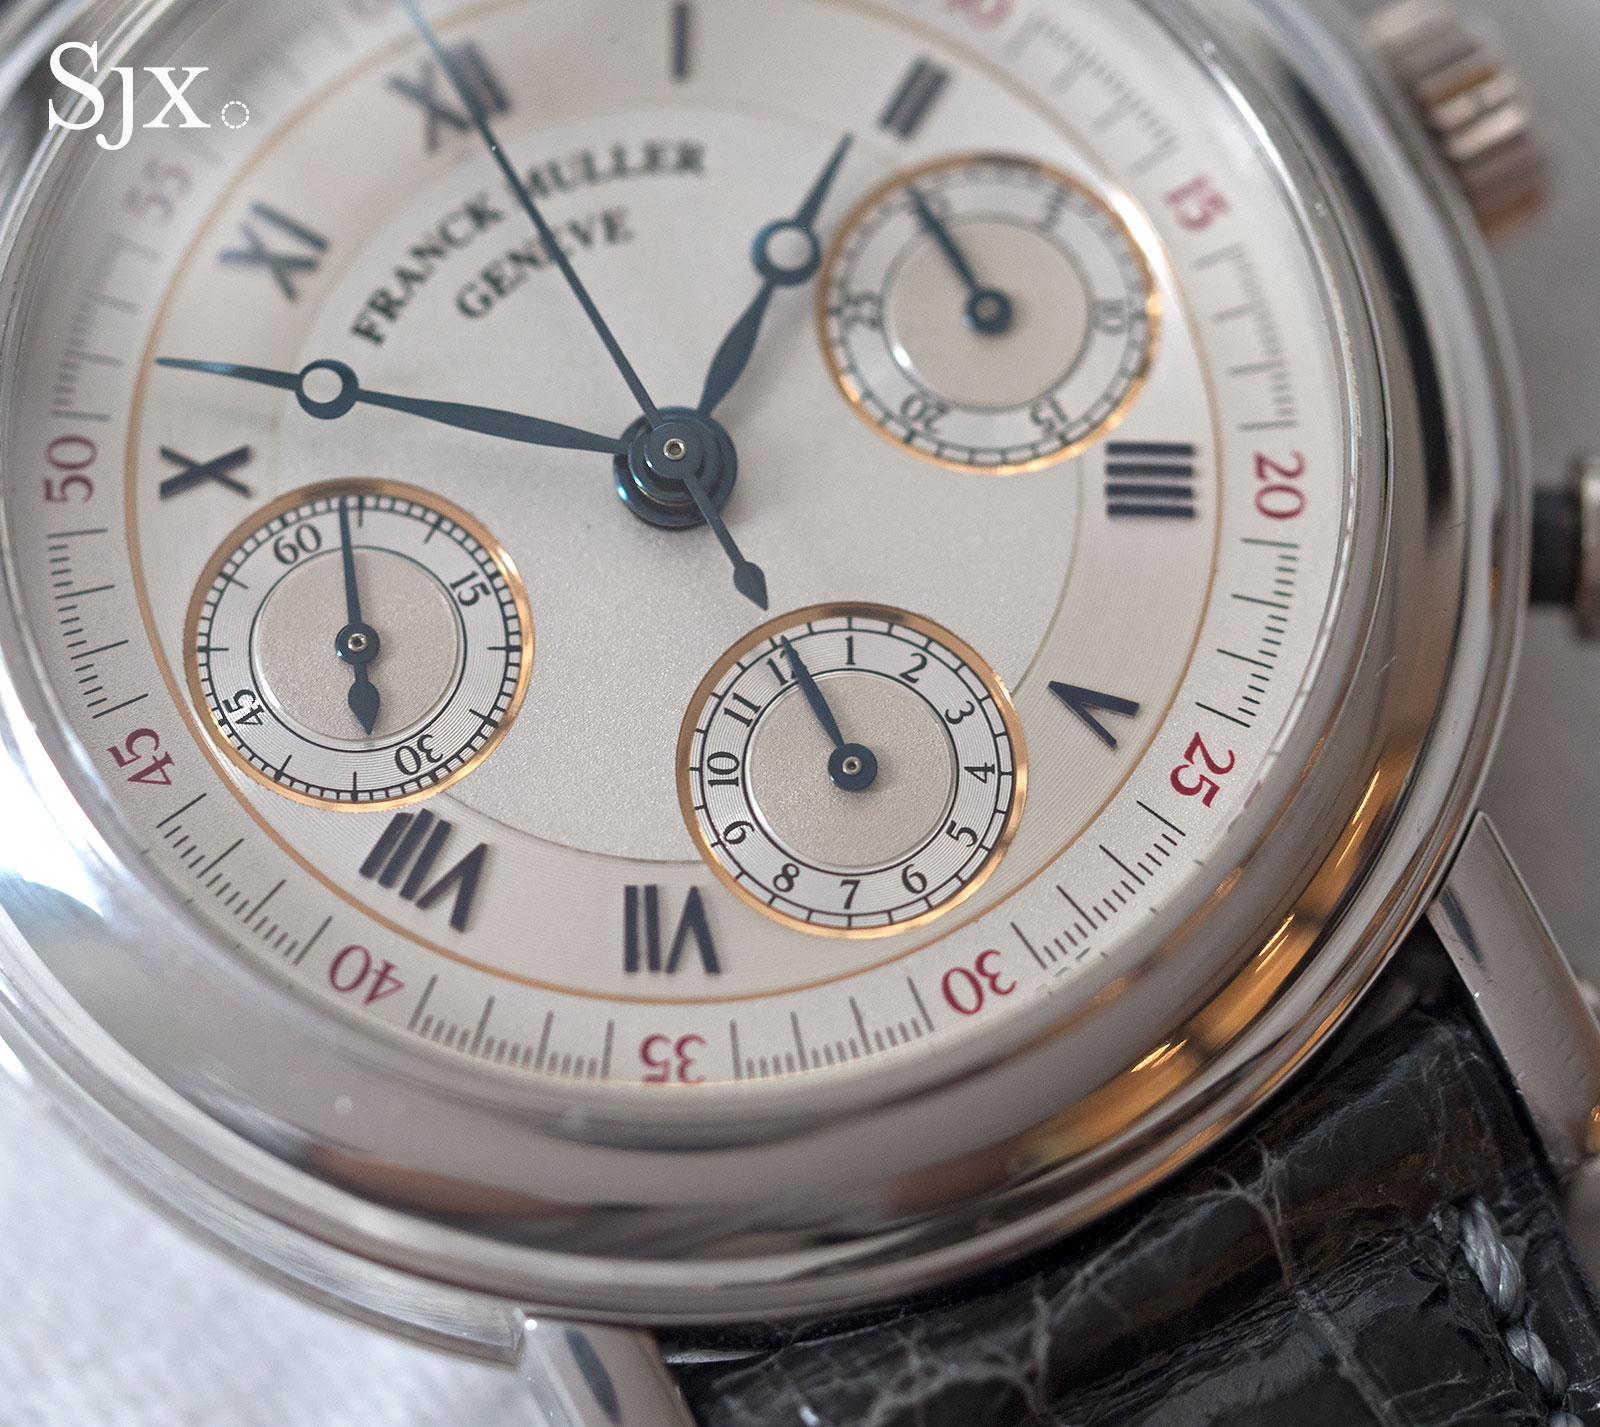 Franck Muller chronograph double face 4